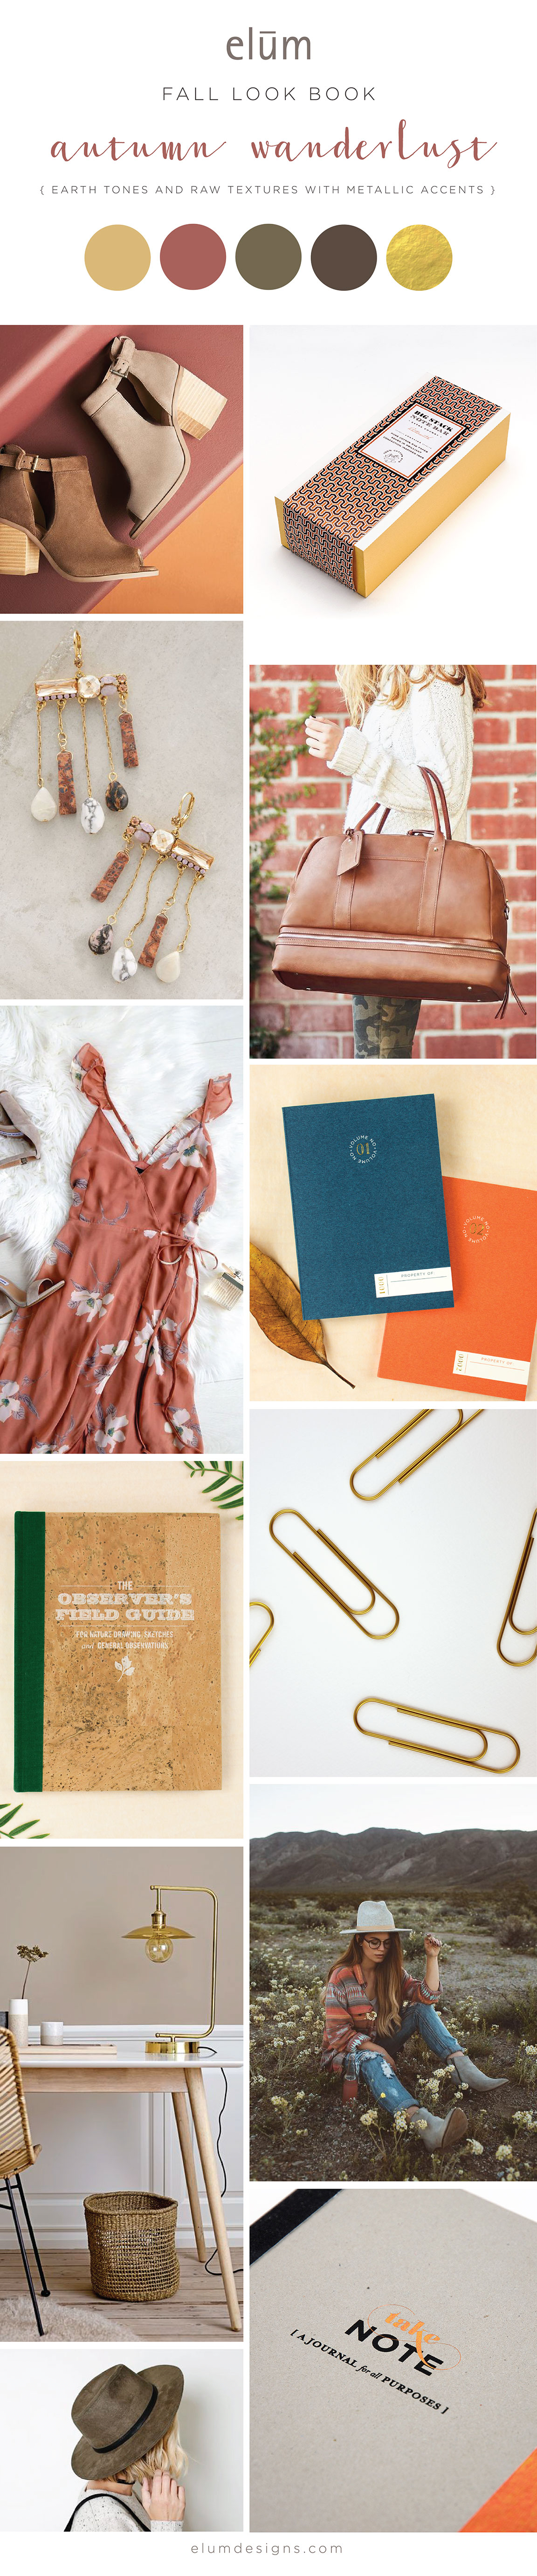 Elum Fall Look Book: Autumn Wanderlust Earth Tones